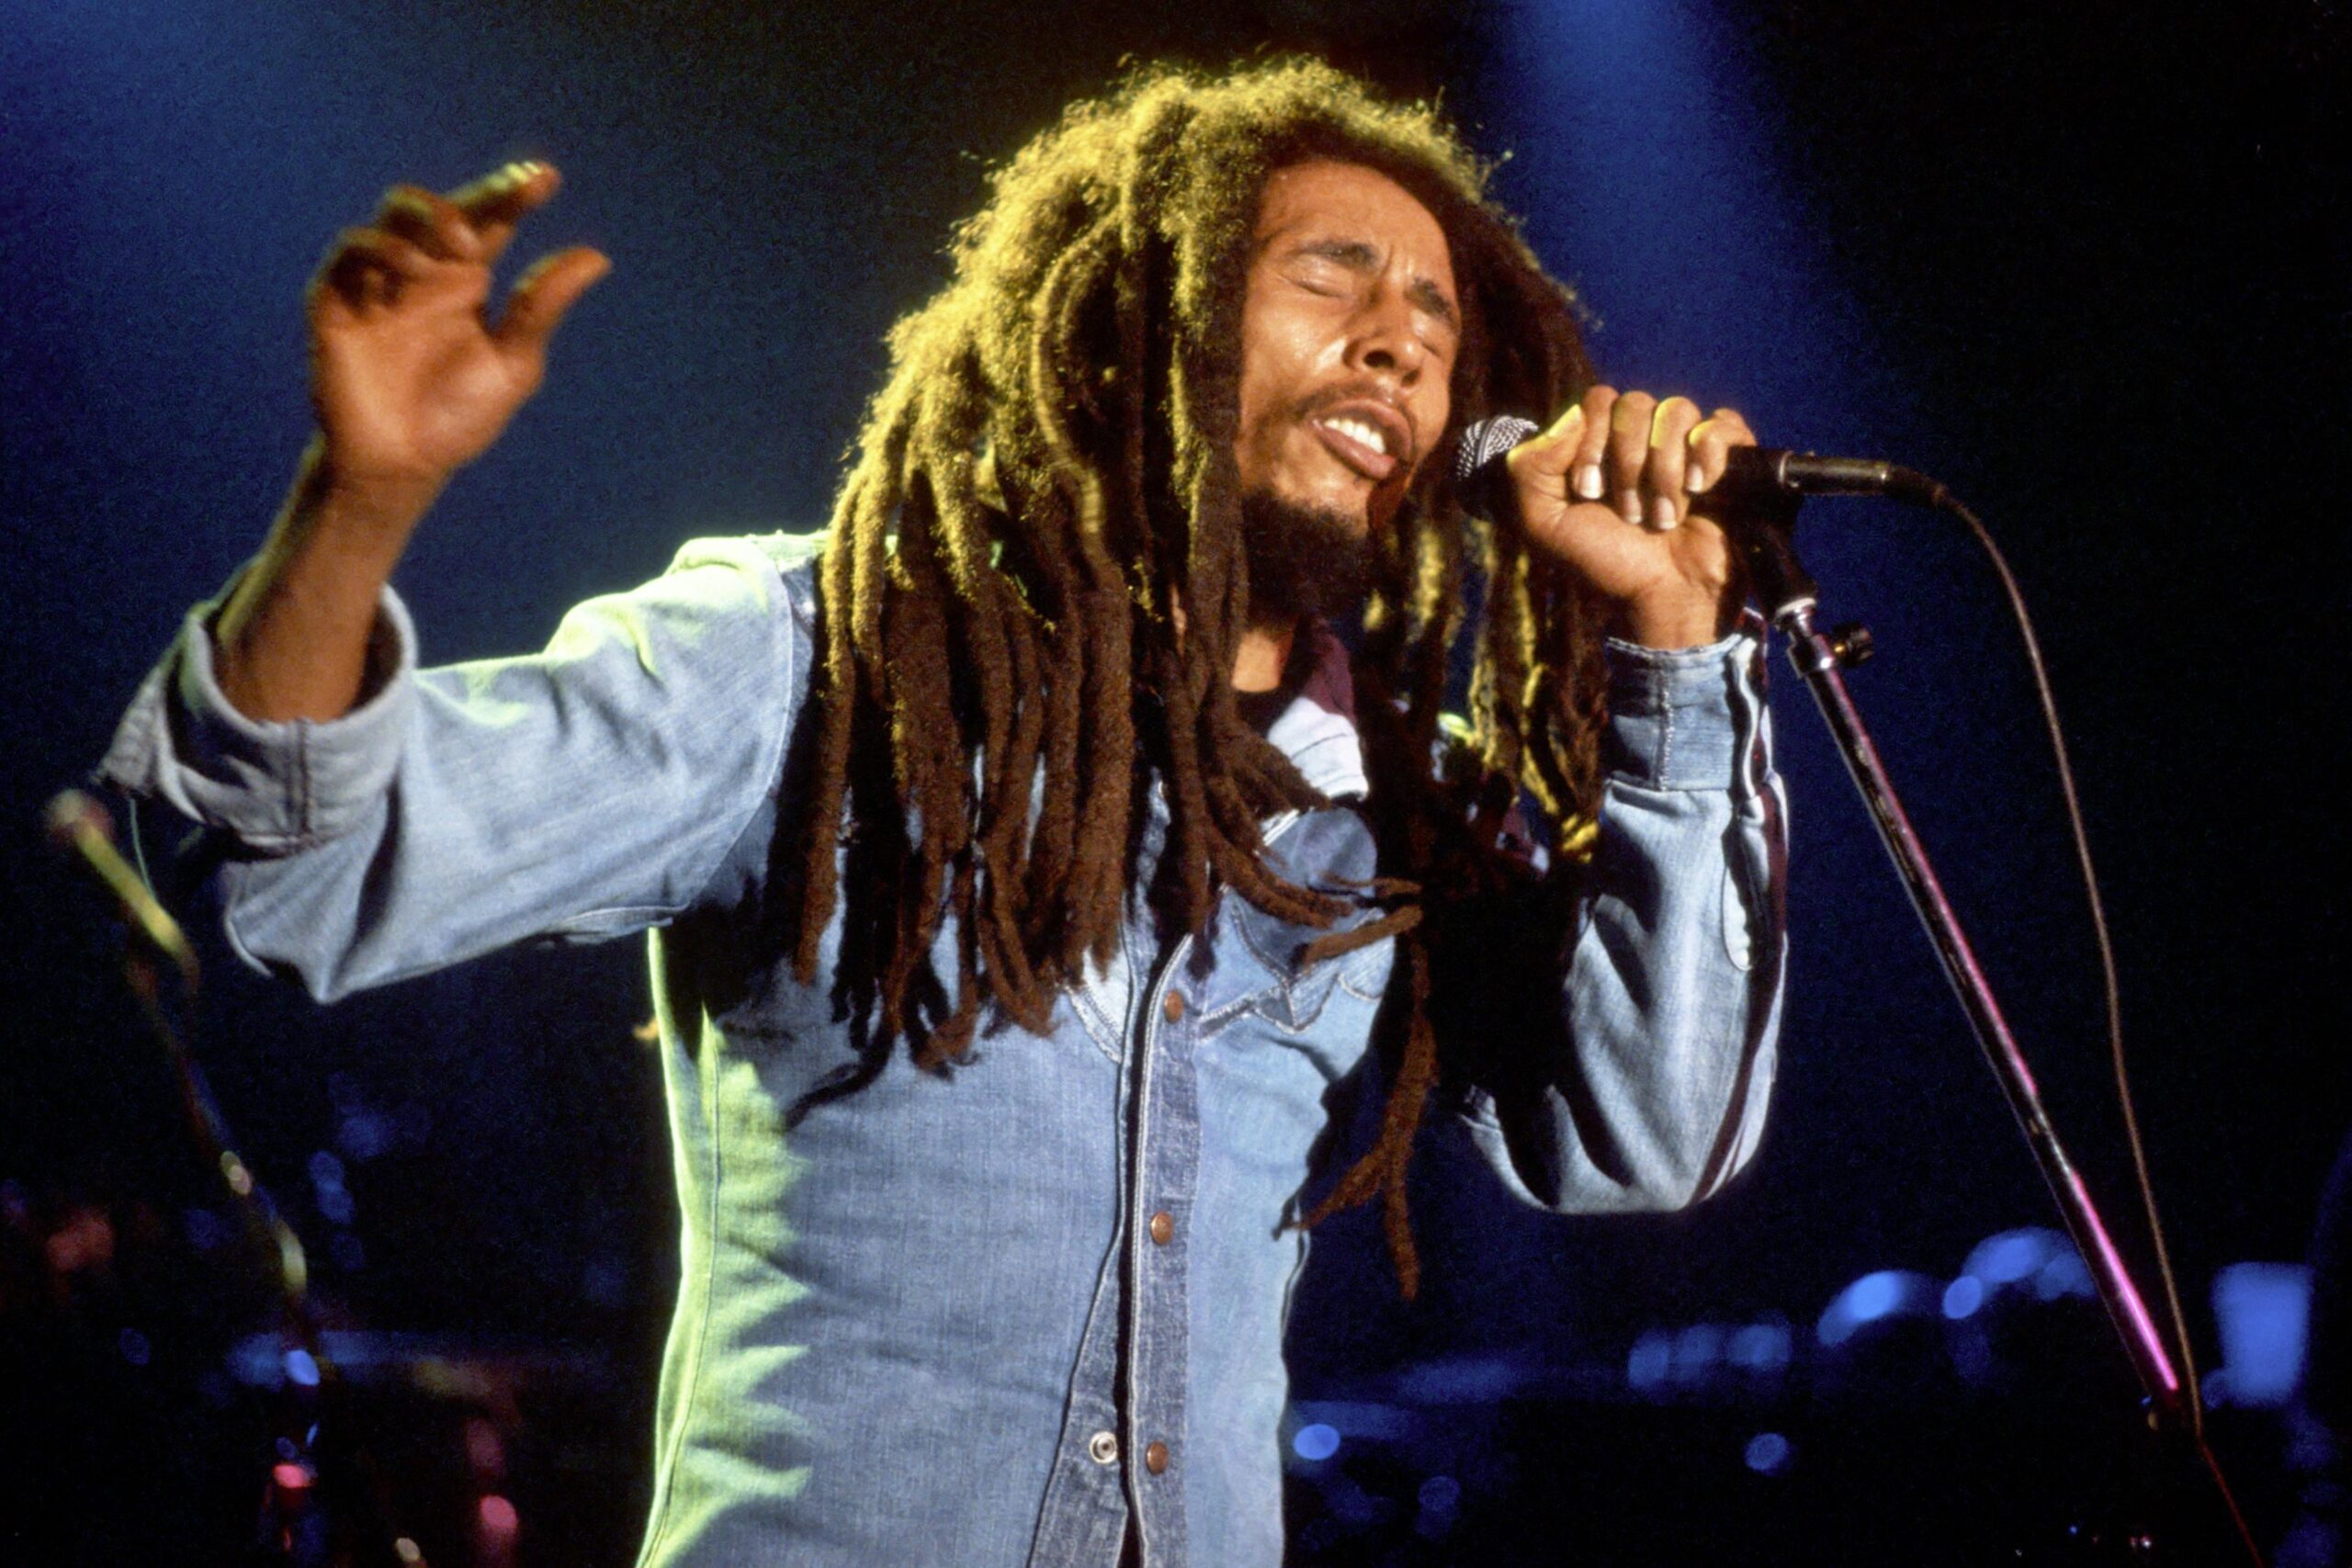 Did Bob Marley Say This About 'The Perfect Woman'? - snopes